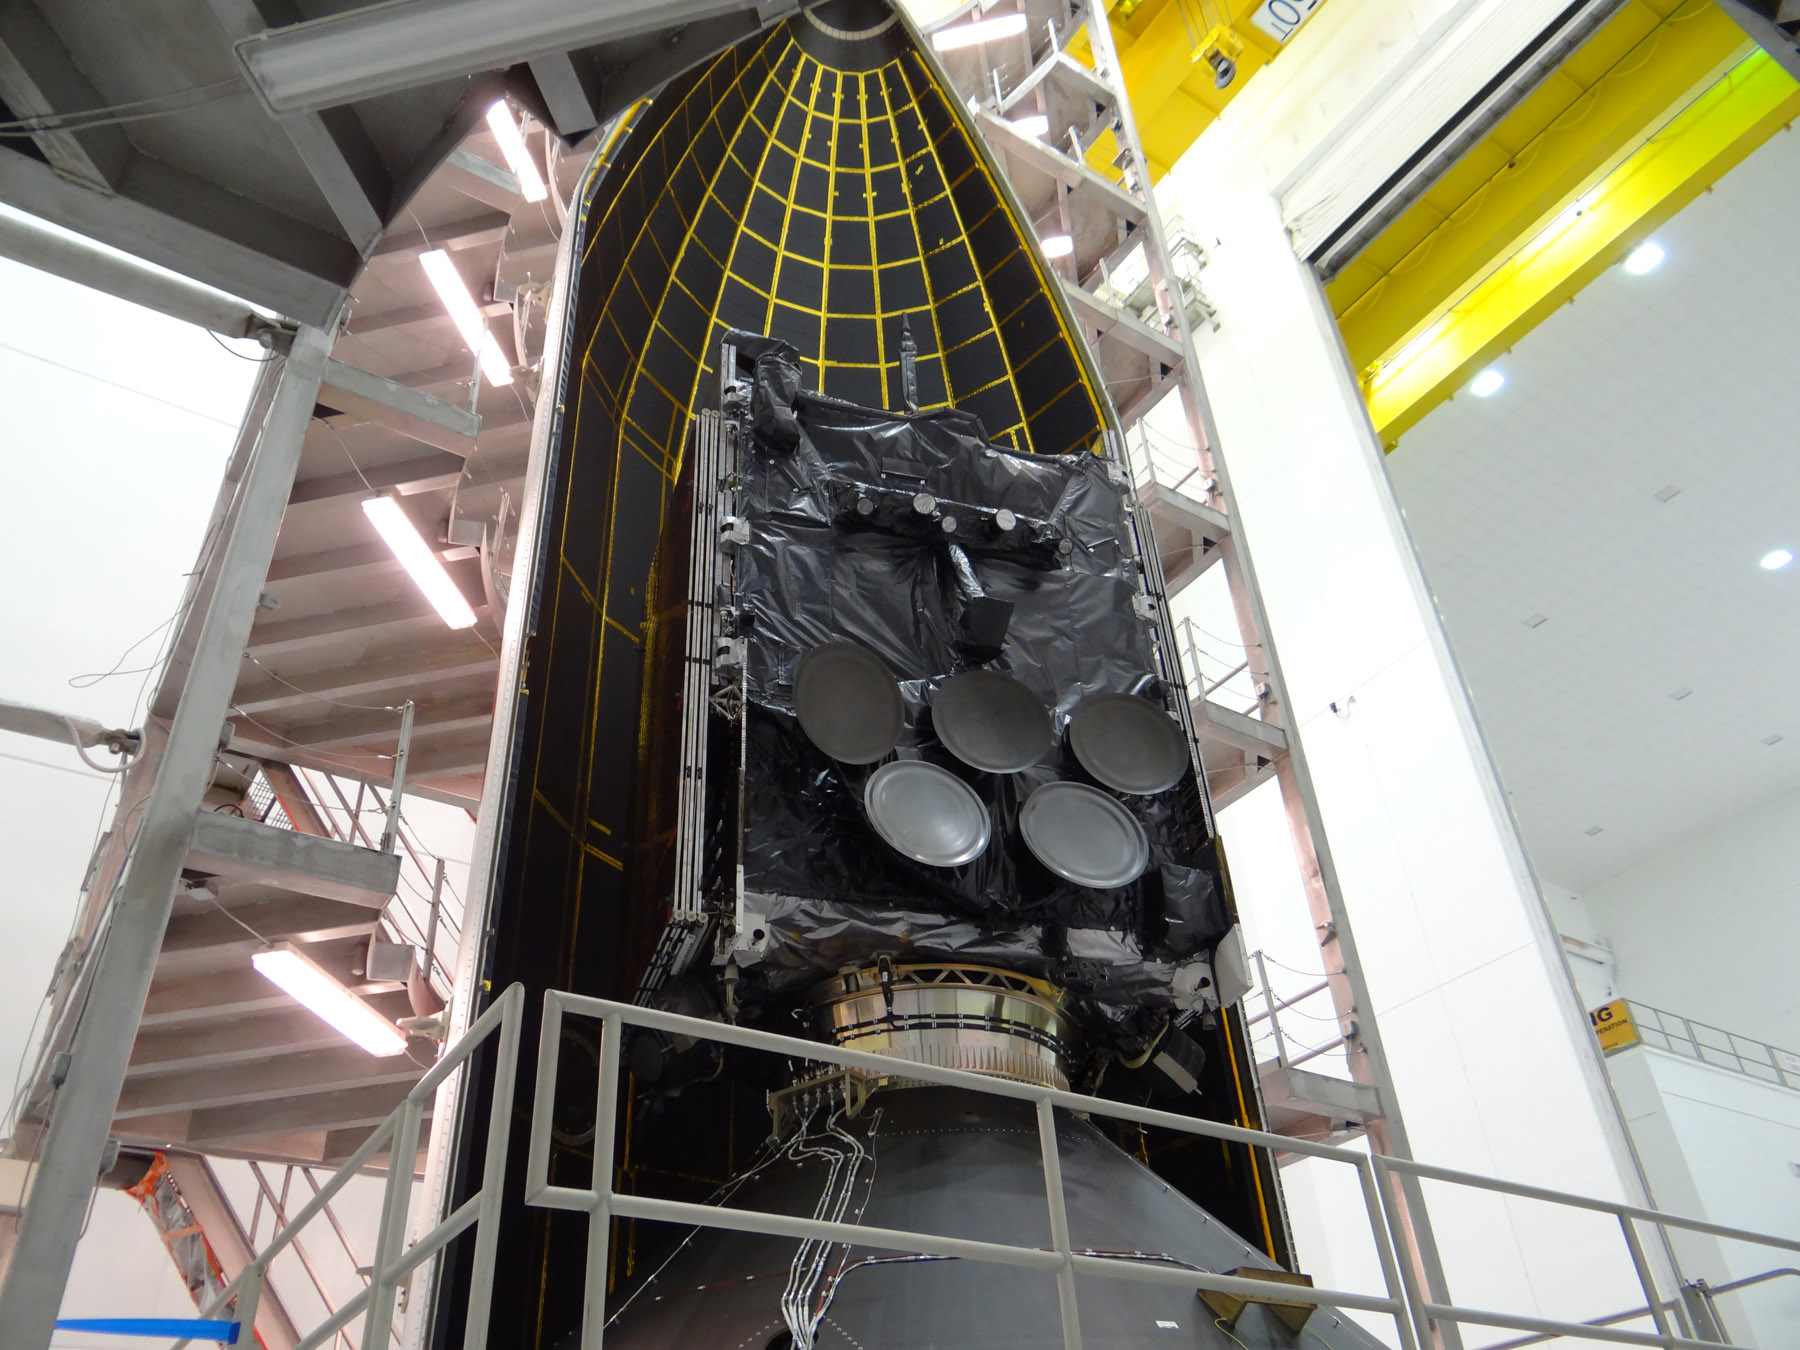 WGS-5 Satellite in Fairing